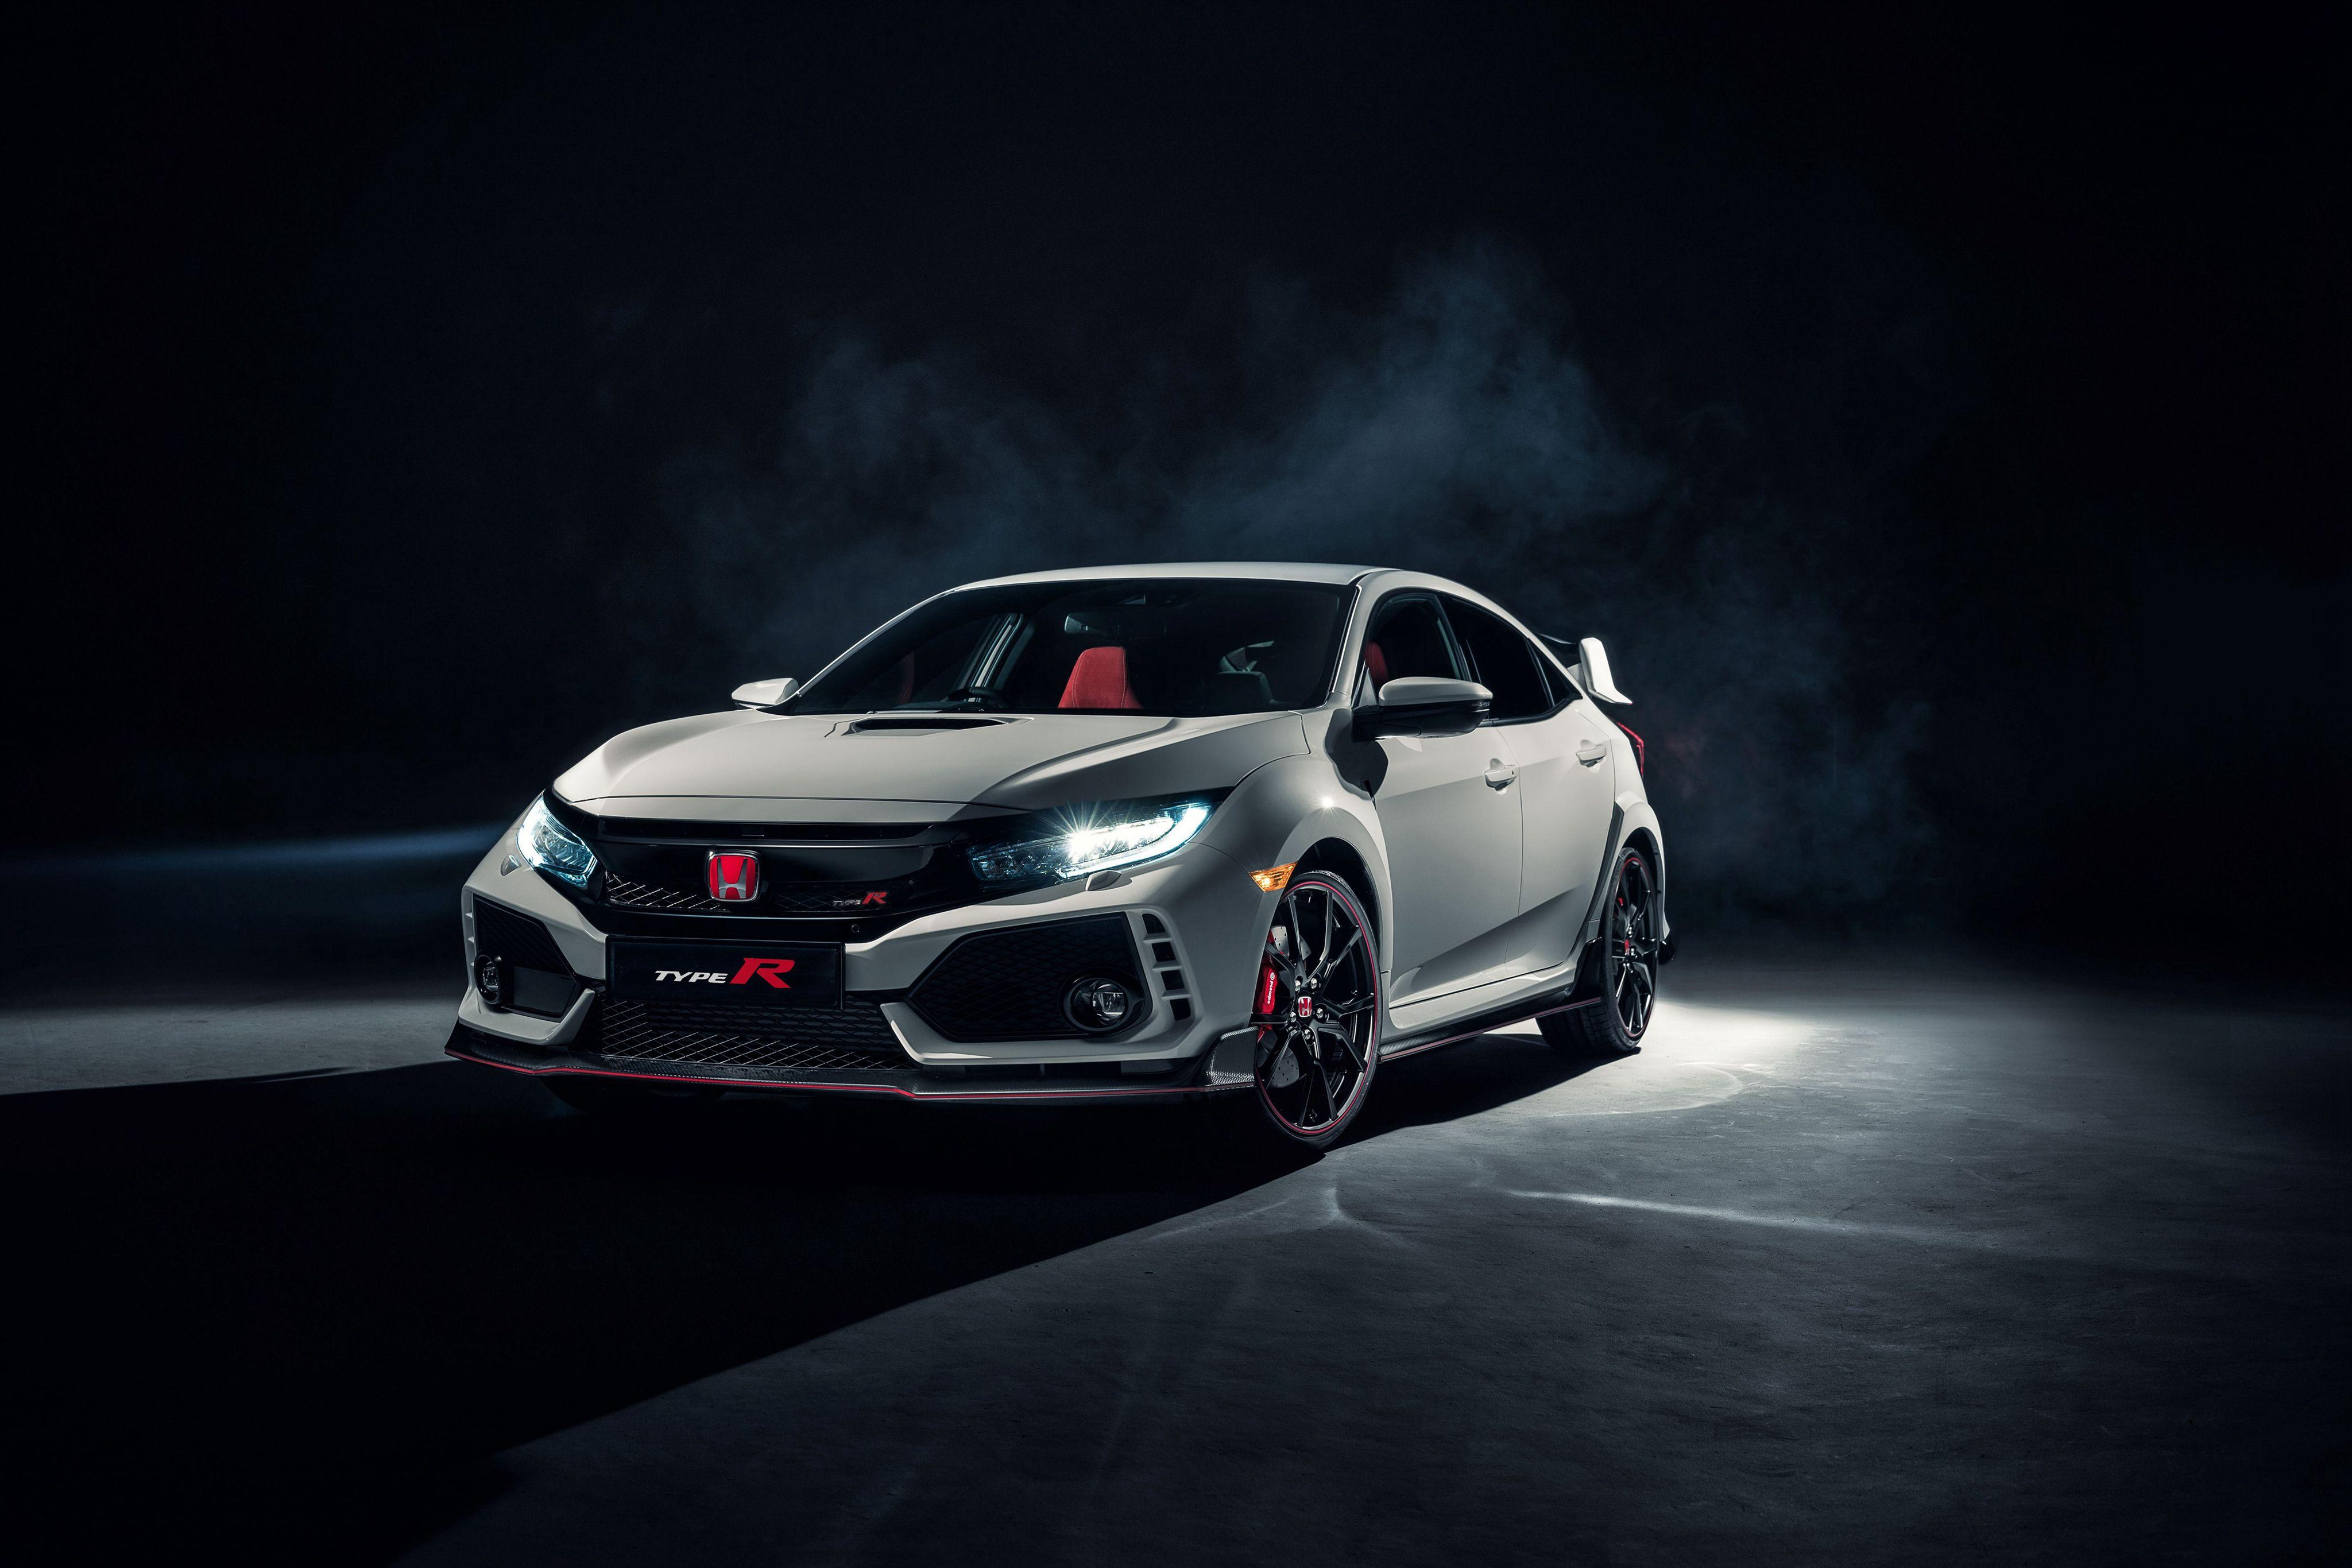 Charmant Wallpaper Honda Civic Type R, 2017, 4K, Automotive / Cars, #6638